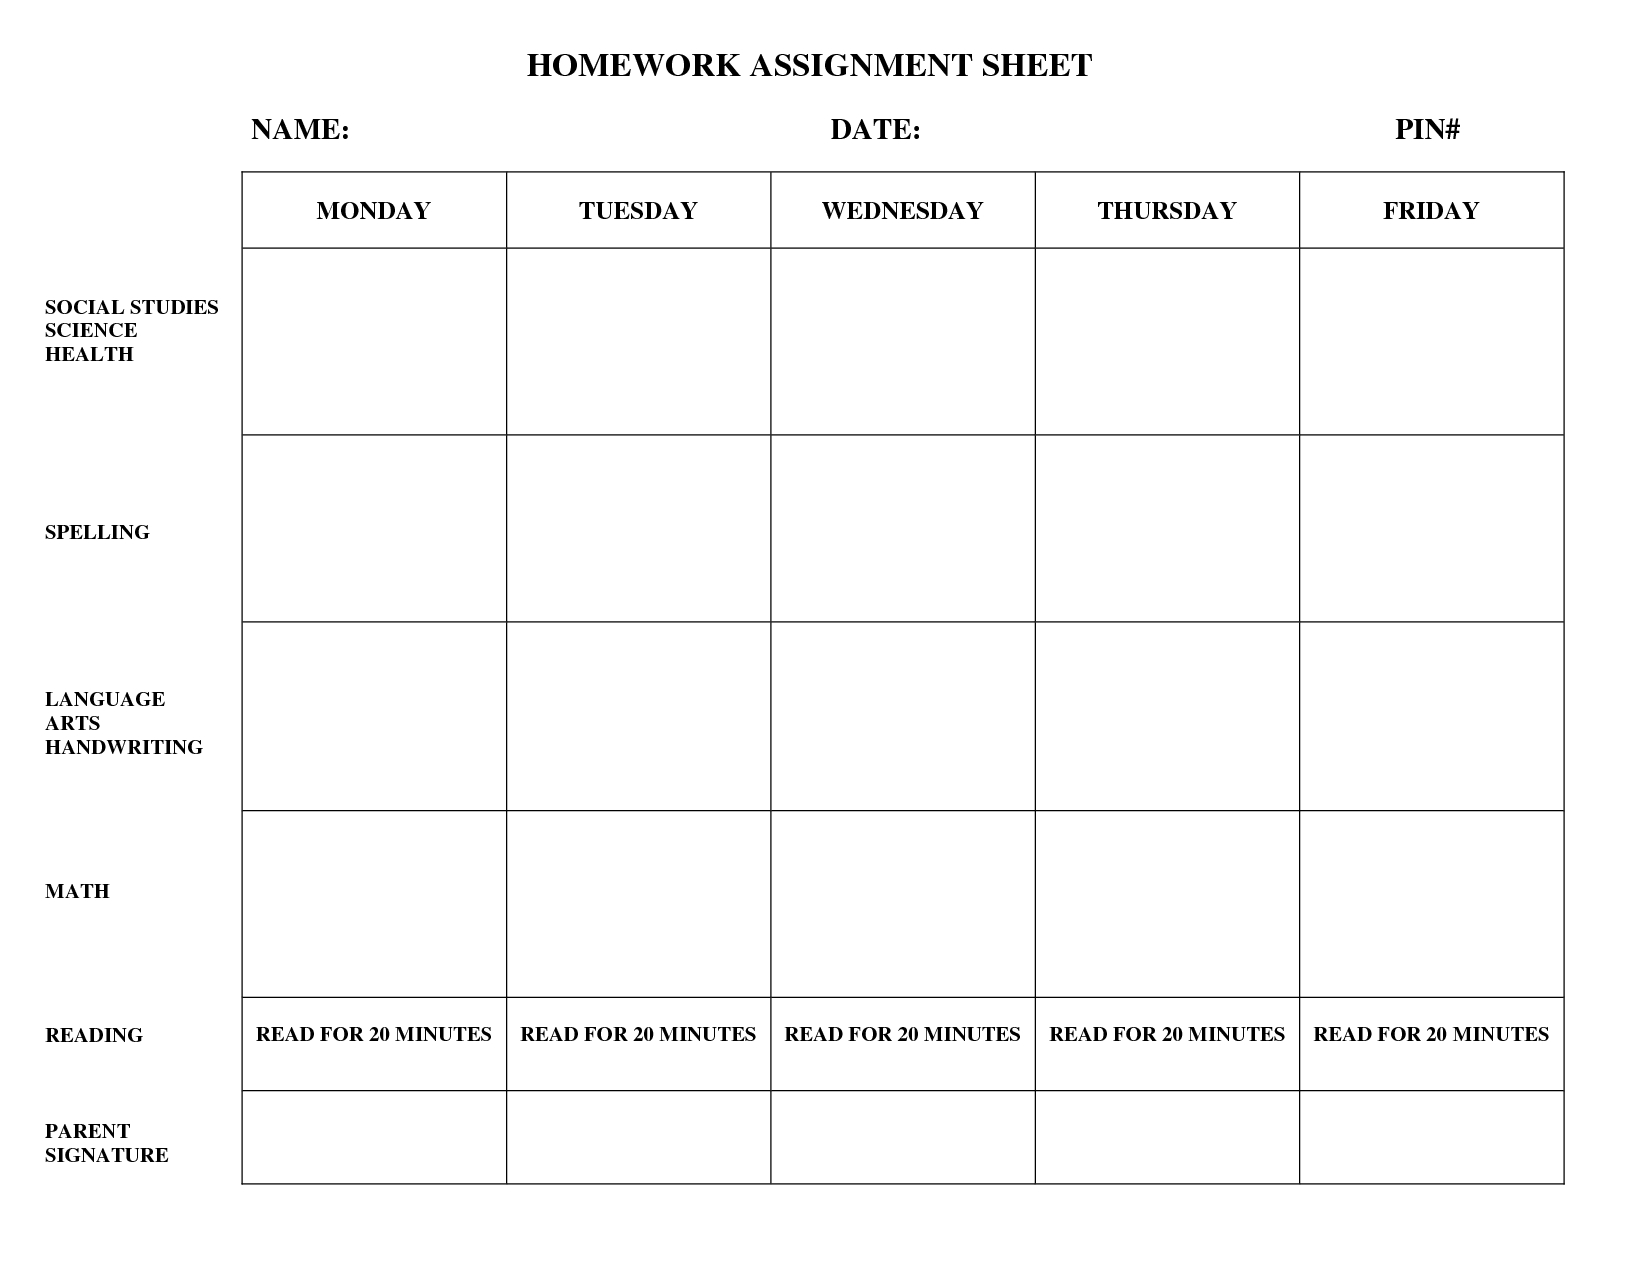 Weekly Homework Assignment Sheet Template - Yeniscale.co  1St Grade Homework Chart Templates